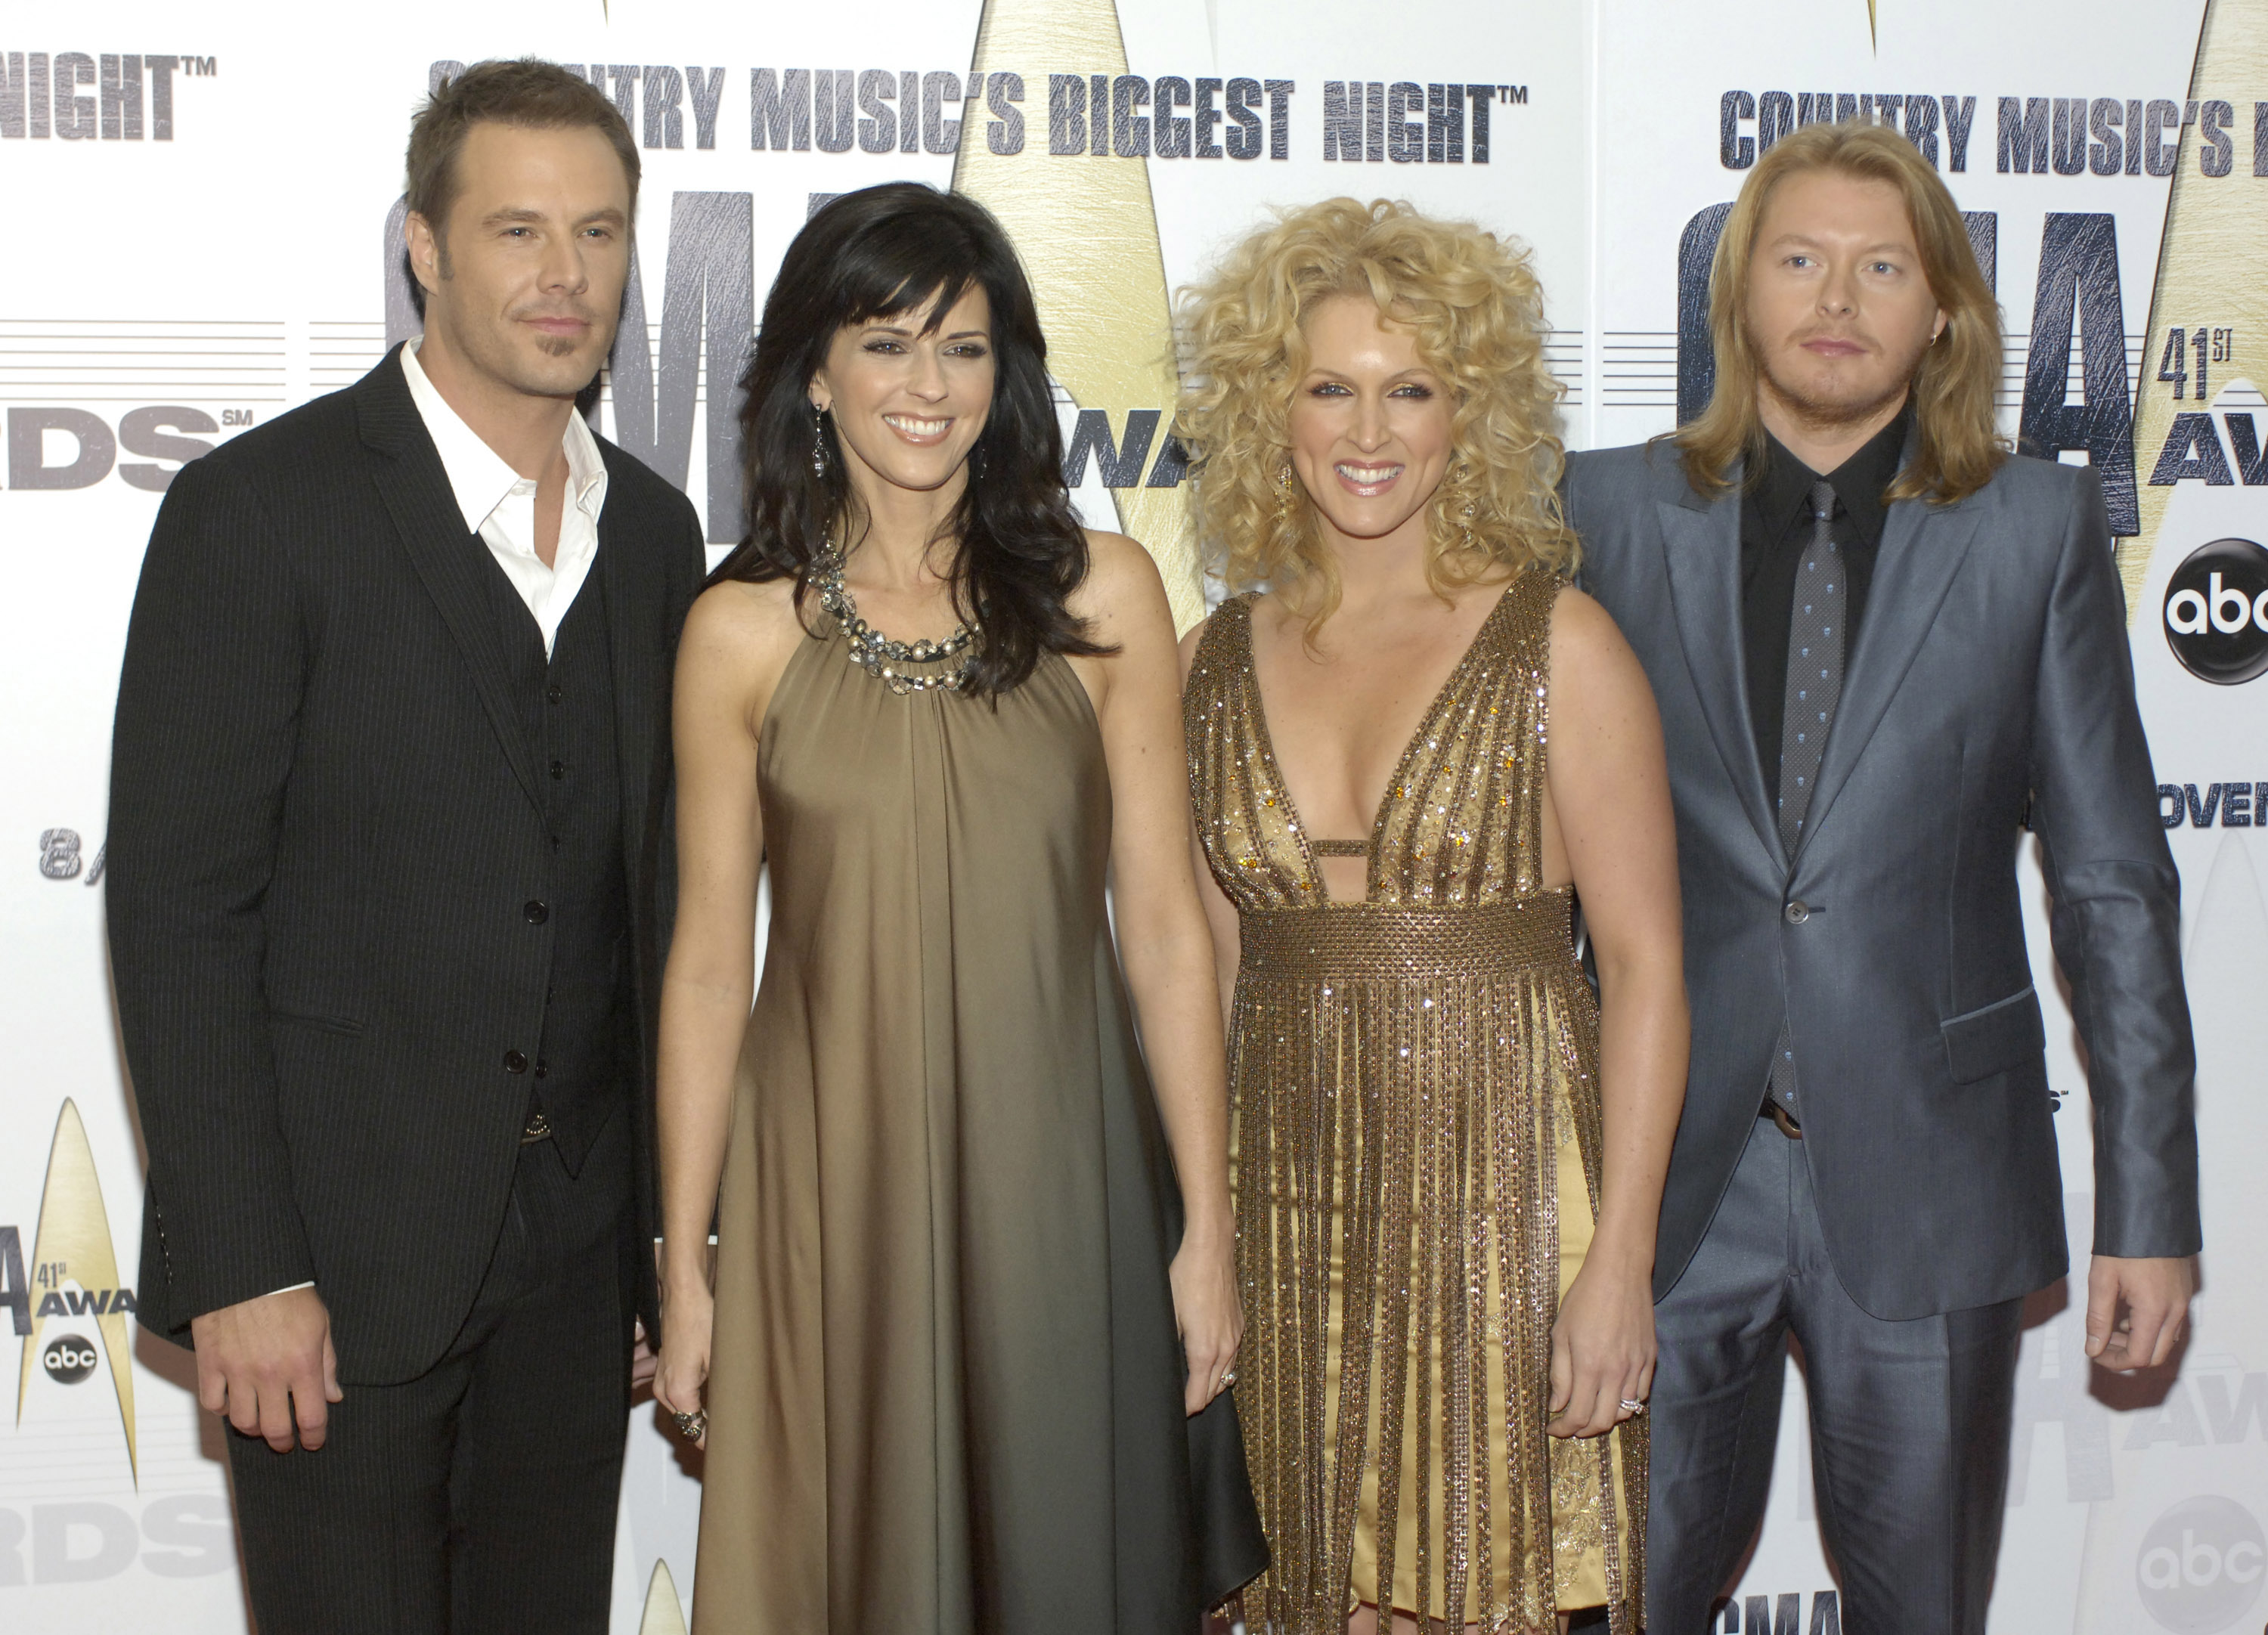 Jimi Westbrook, Karen Fairchild, Kimberly Roads Schlapman and Phillip Sweet of Little Big Town arrive at the 41st Annual CMA Awards at the Sommet Center on November 7, 2007 in Nashville TN; Photo by Frank Mullen/WireImage